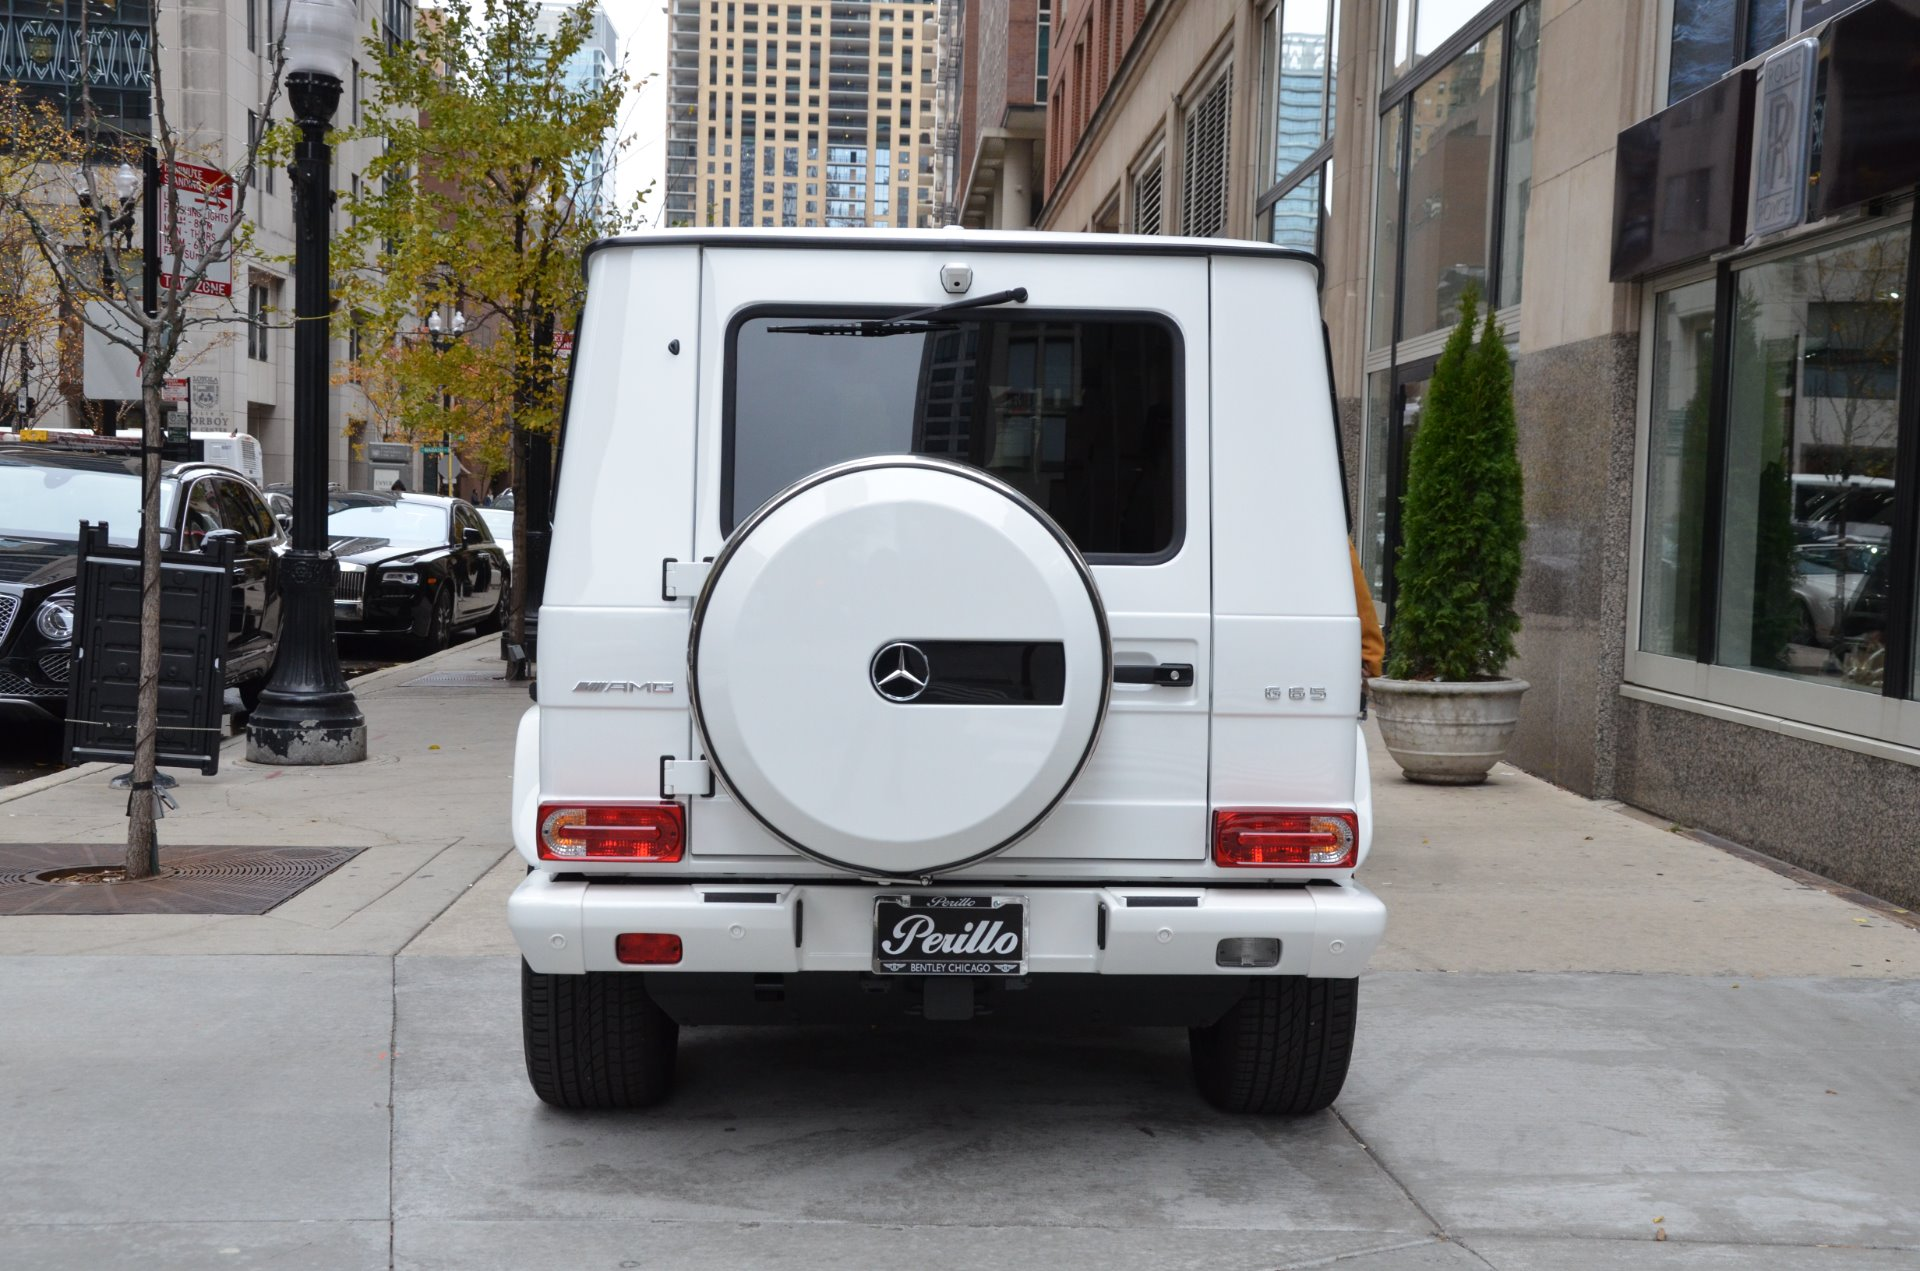 2016 mercedes g wagon price. used 2016 mercedes-benz g-class g65 amg | chicago, il mercedes g wagon price